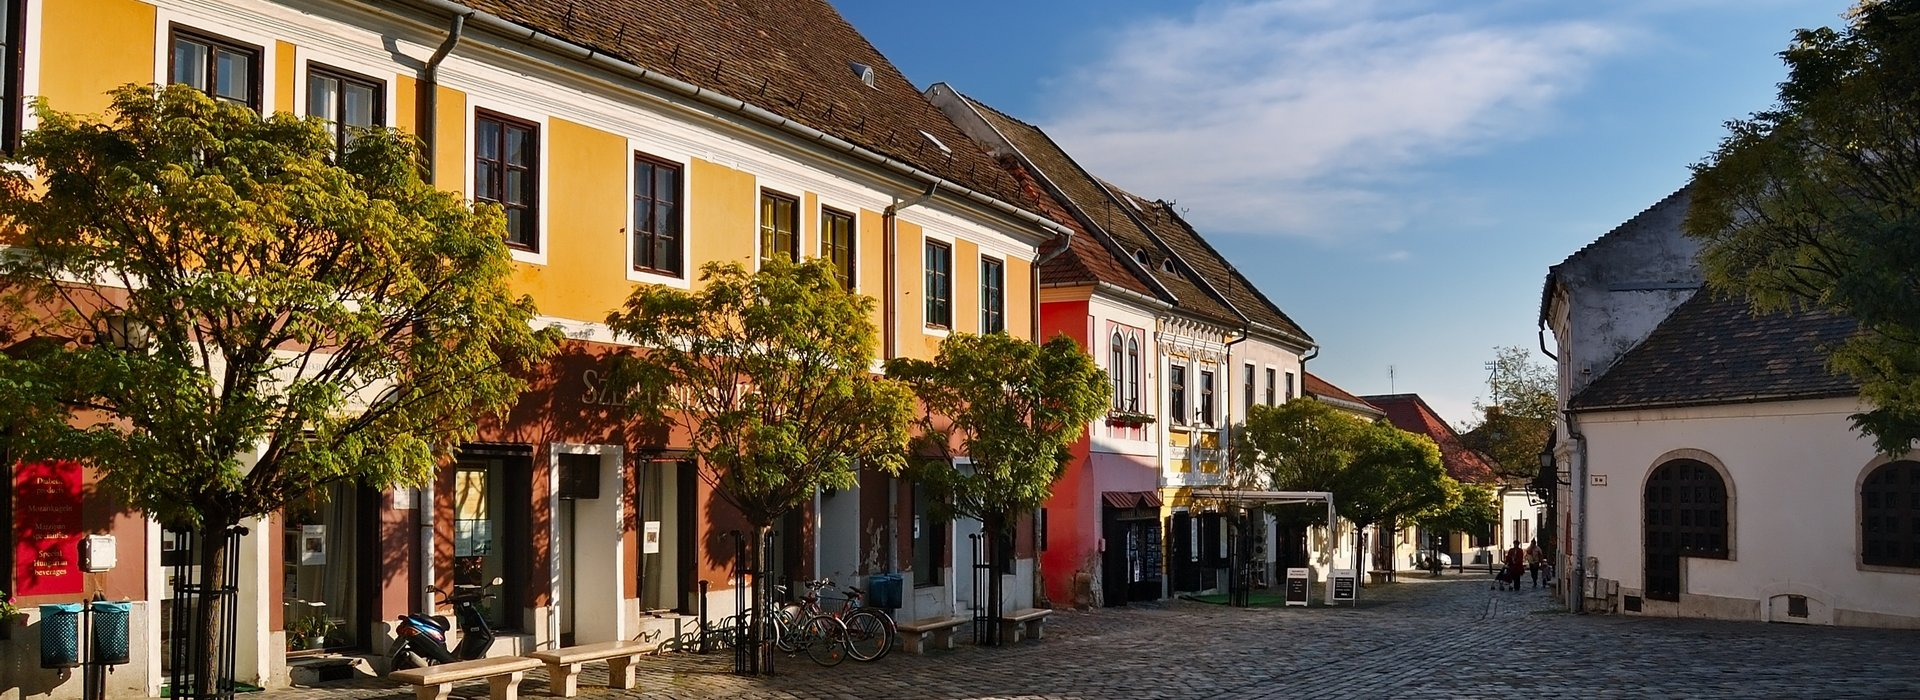 Szentendre accommodation - Hotels, pensions, apartments